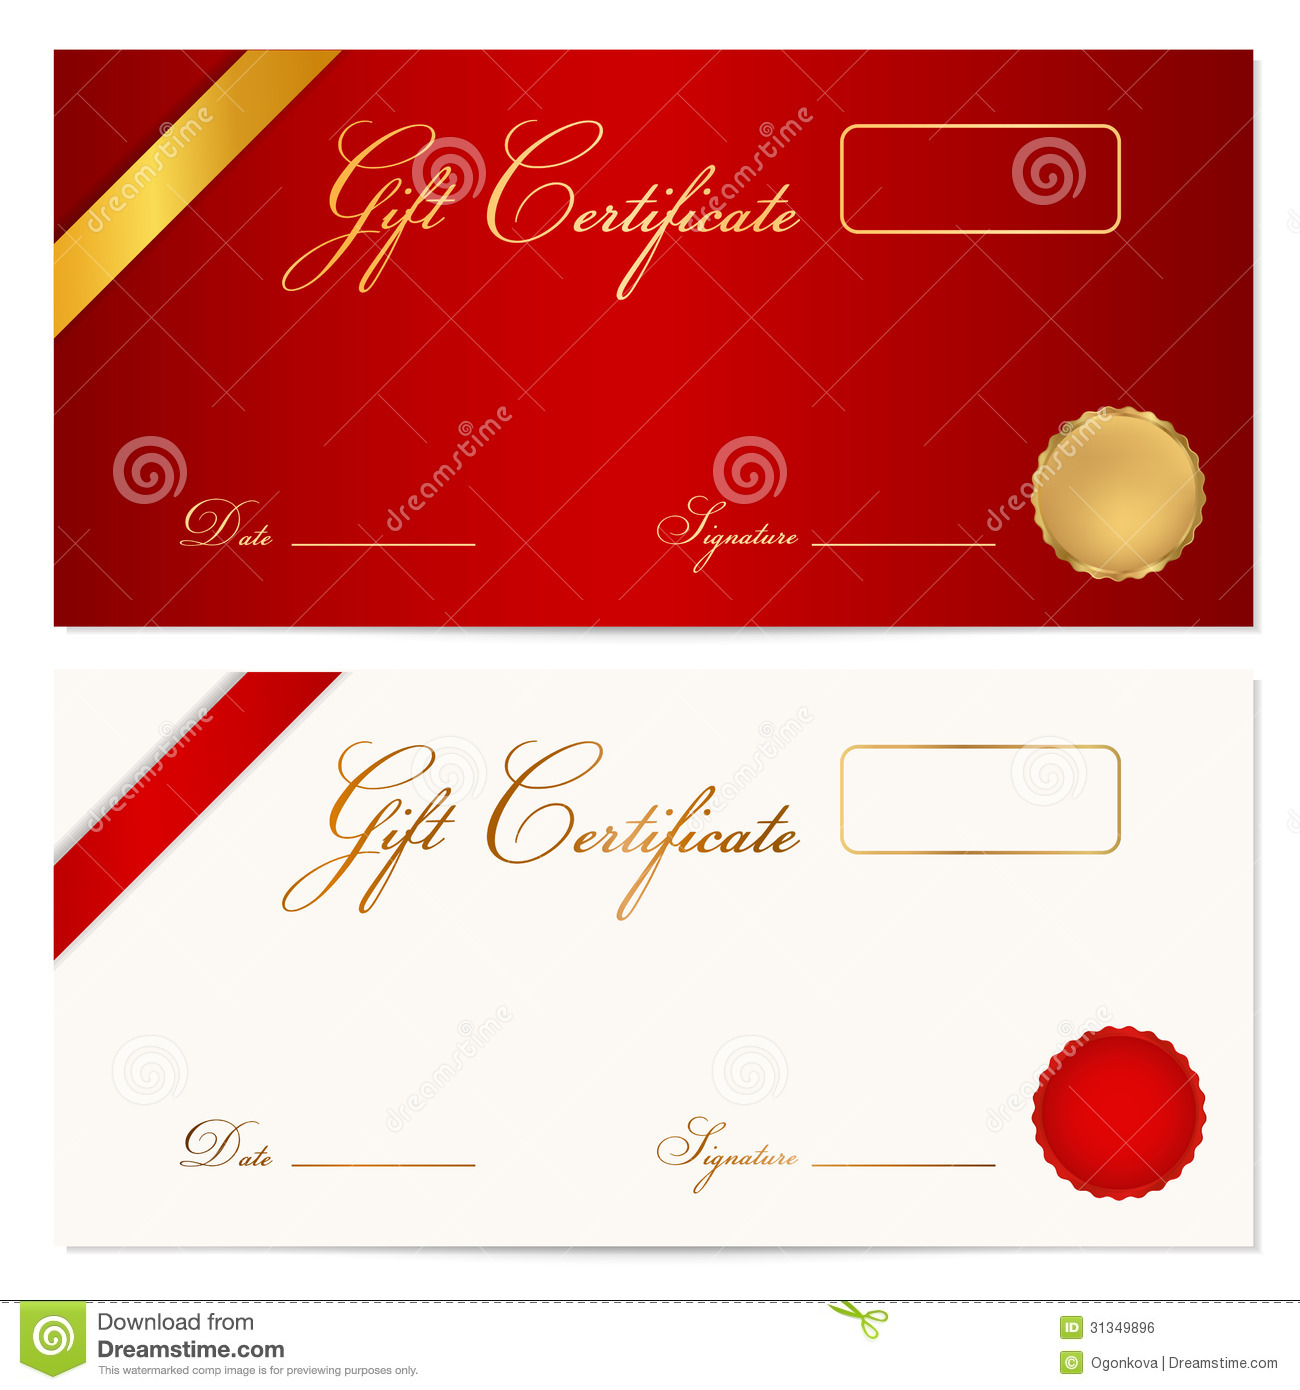 gift certificate voucher template wax seal stock vector illustration of reward present. Black Bedroom Furniture Sets. Home Design Ideas